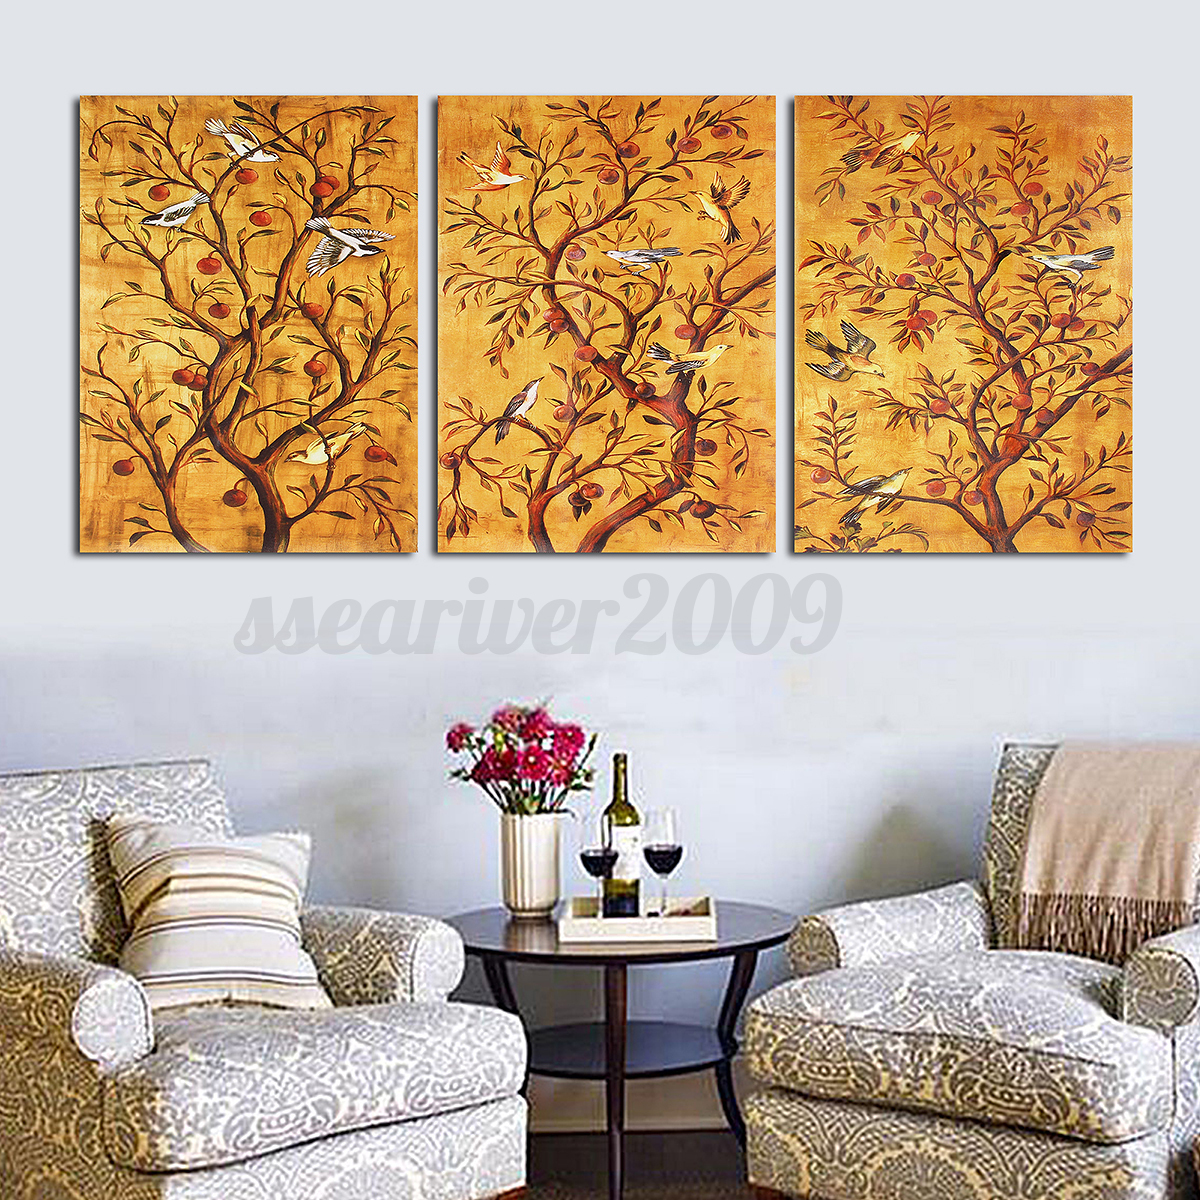 Home Decor Paintings Large 3 Panels Modern Abstract Canvas Art Oil Painting